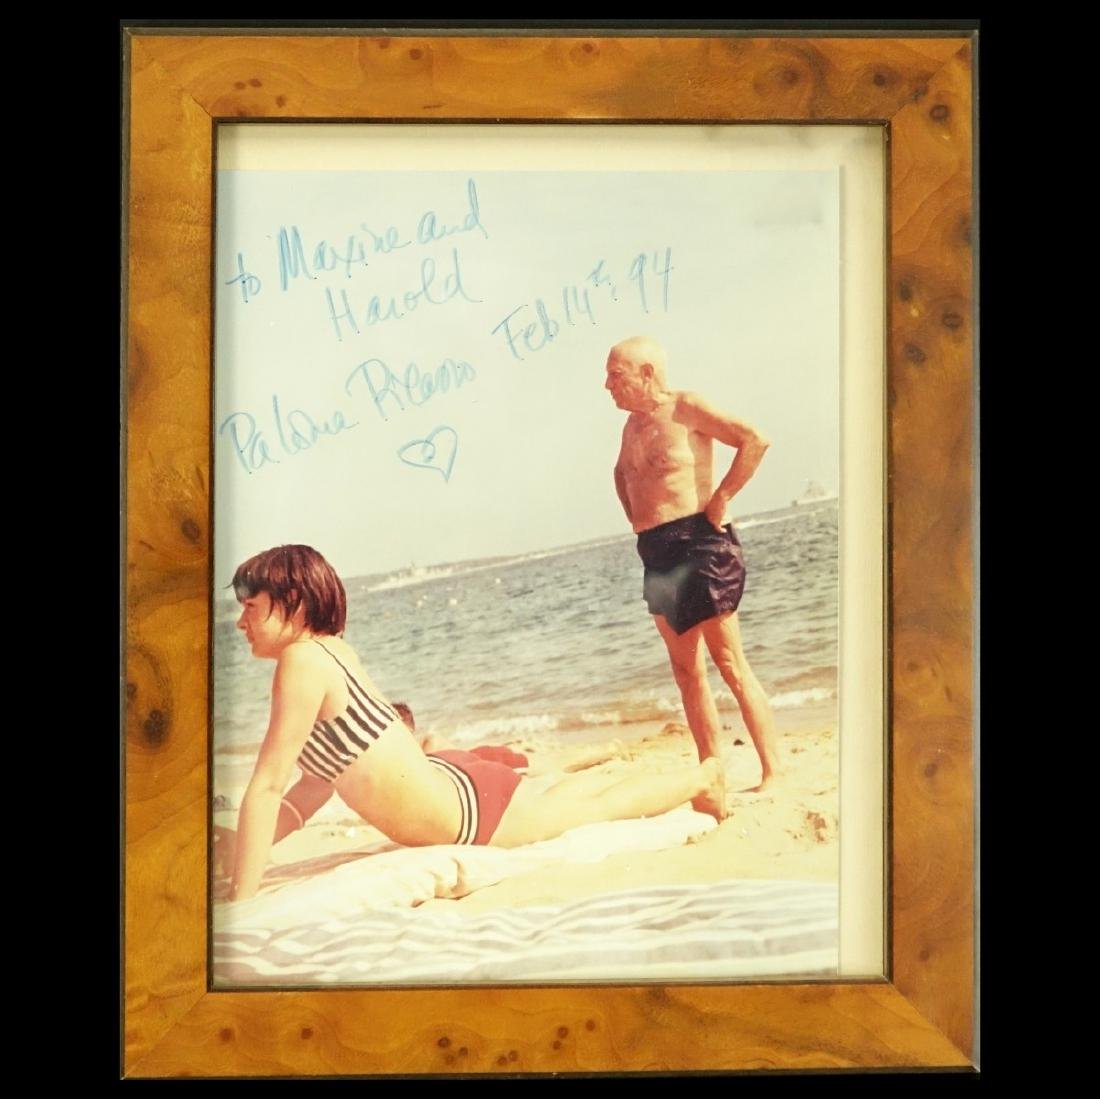 Photograph Of Picasso Signed By Paloma Picasso - 2